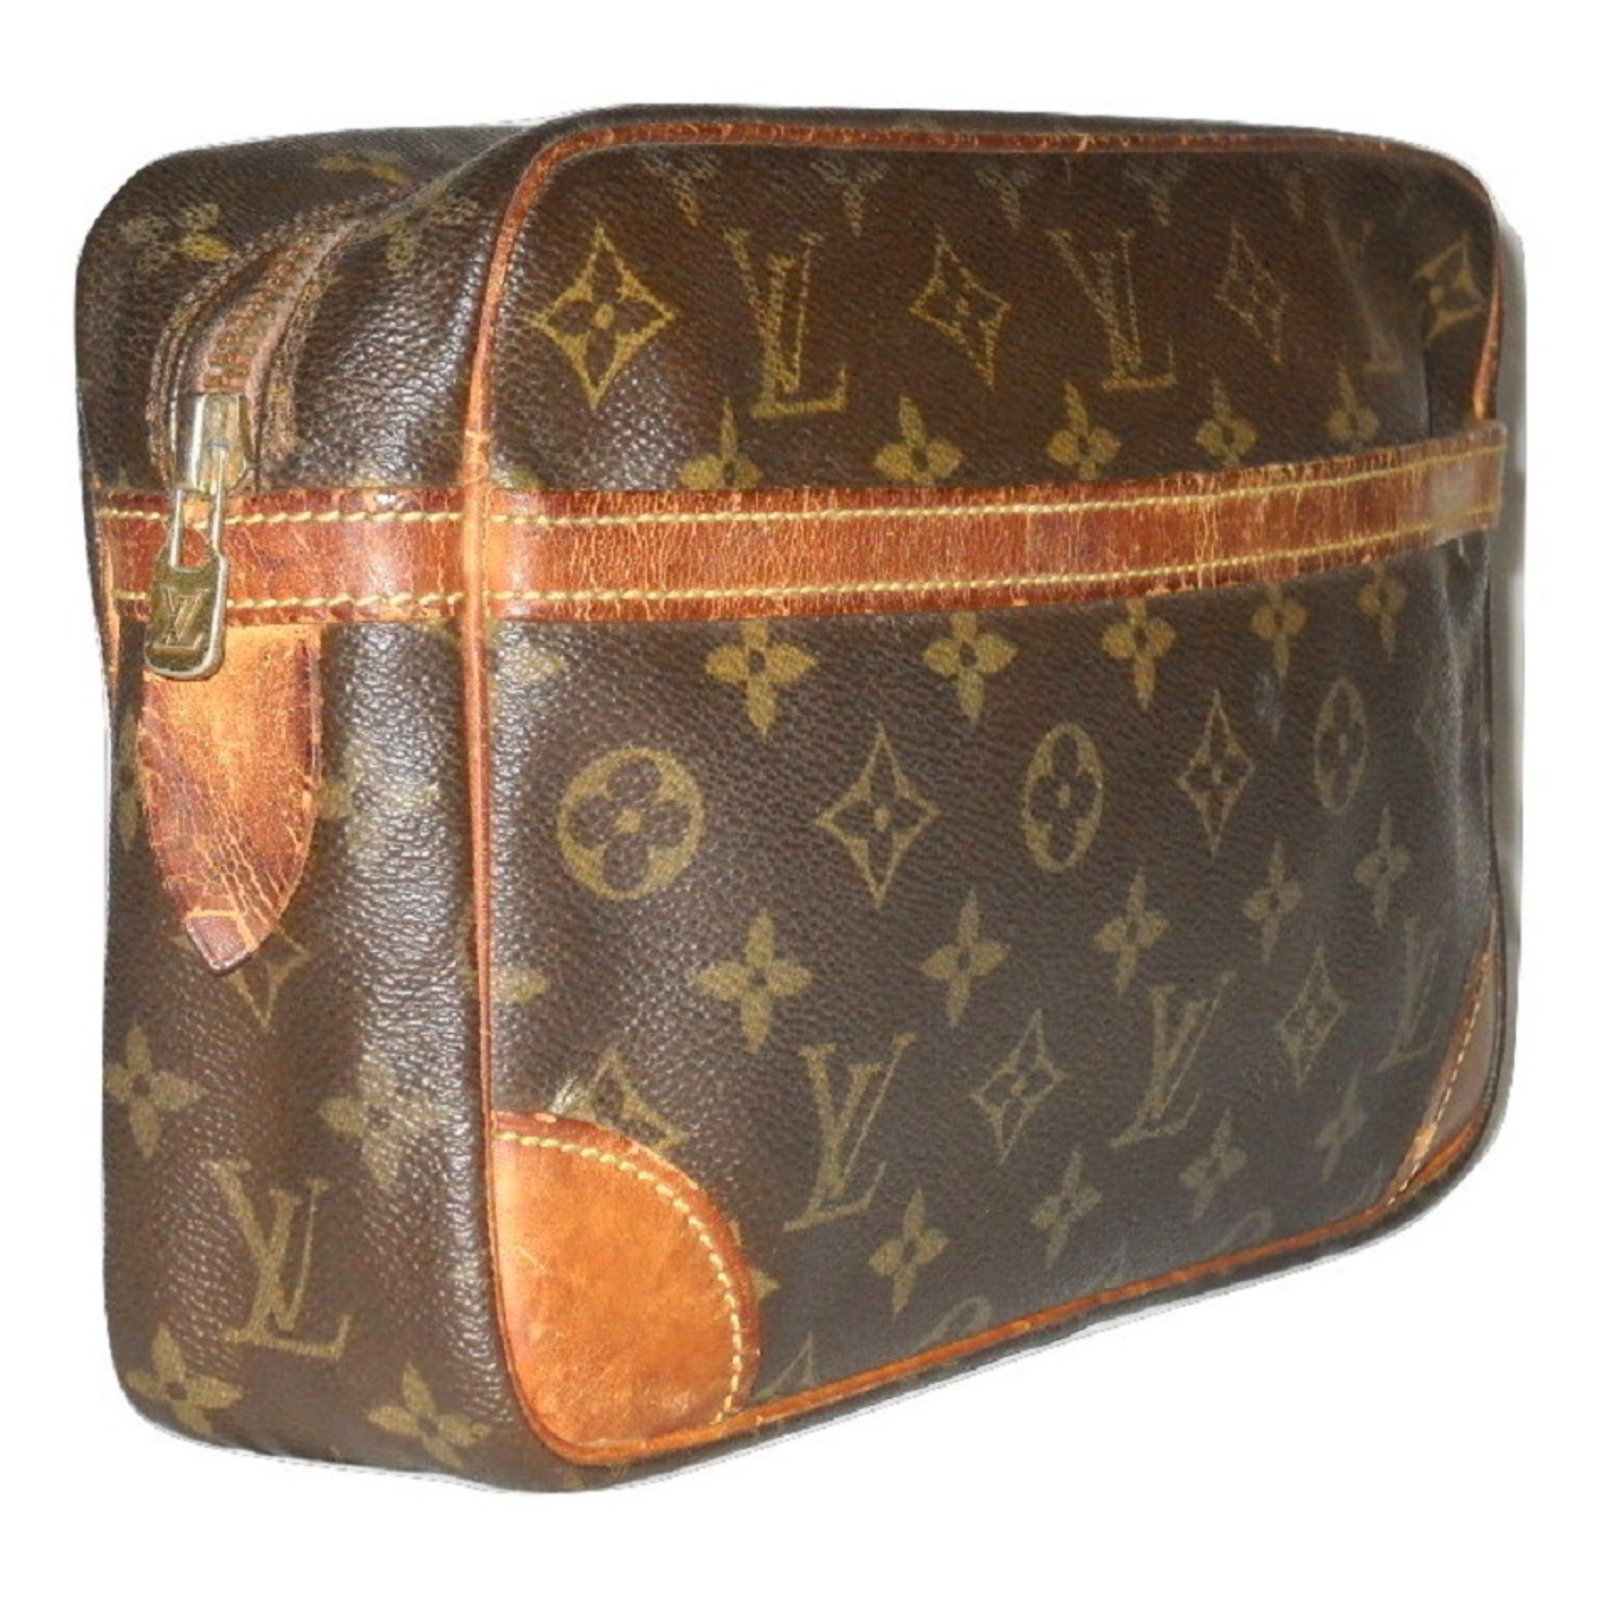 Cuir De Vachette Ou De Buffle louis vuitton cuir de vachette doublure synthetique | jaguar